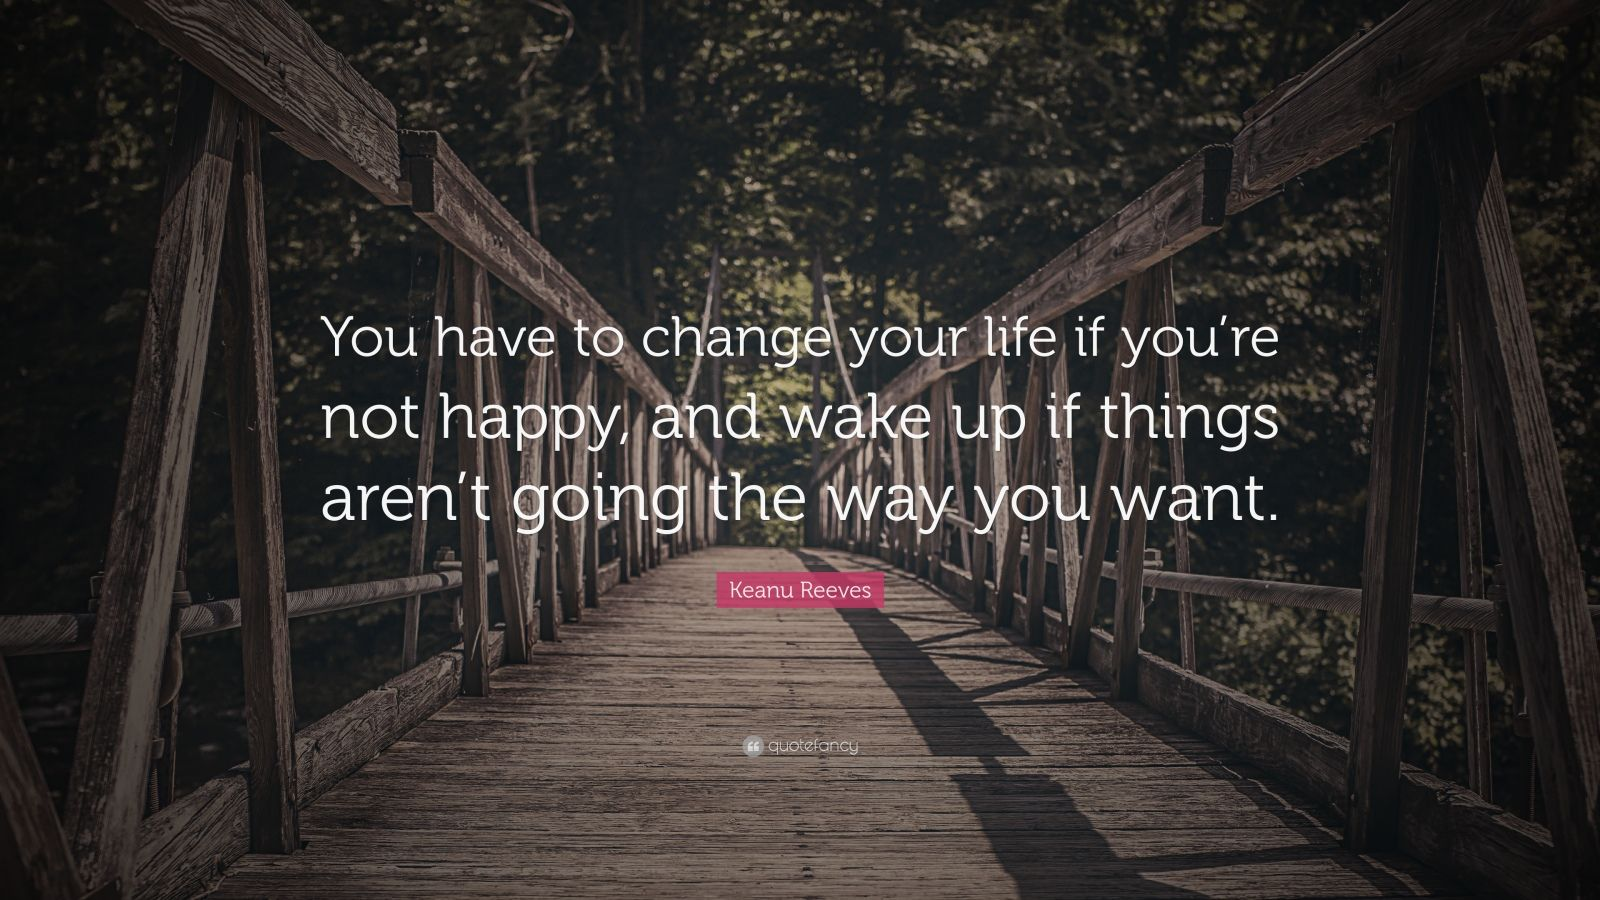 Keanu Reeves Quote You Have To Change Your Life If You Re Not Happy And Wake Up If Things